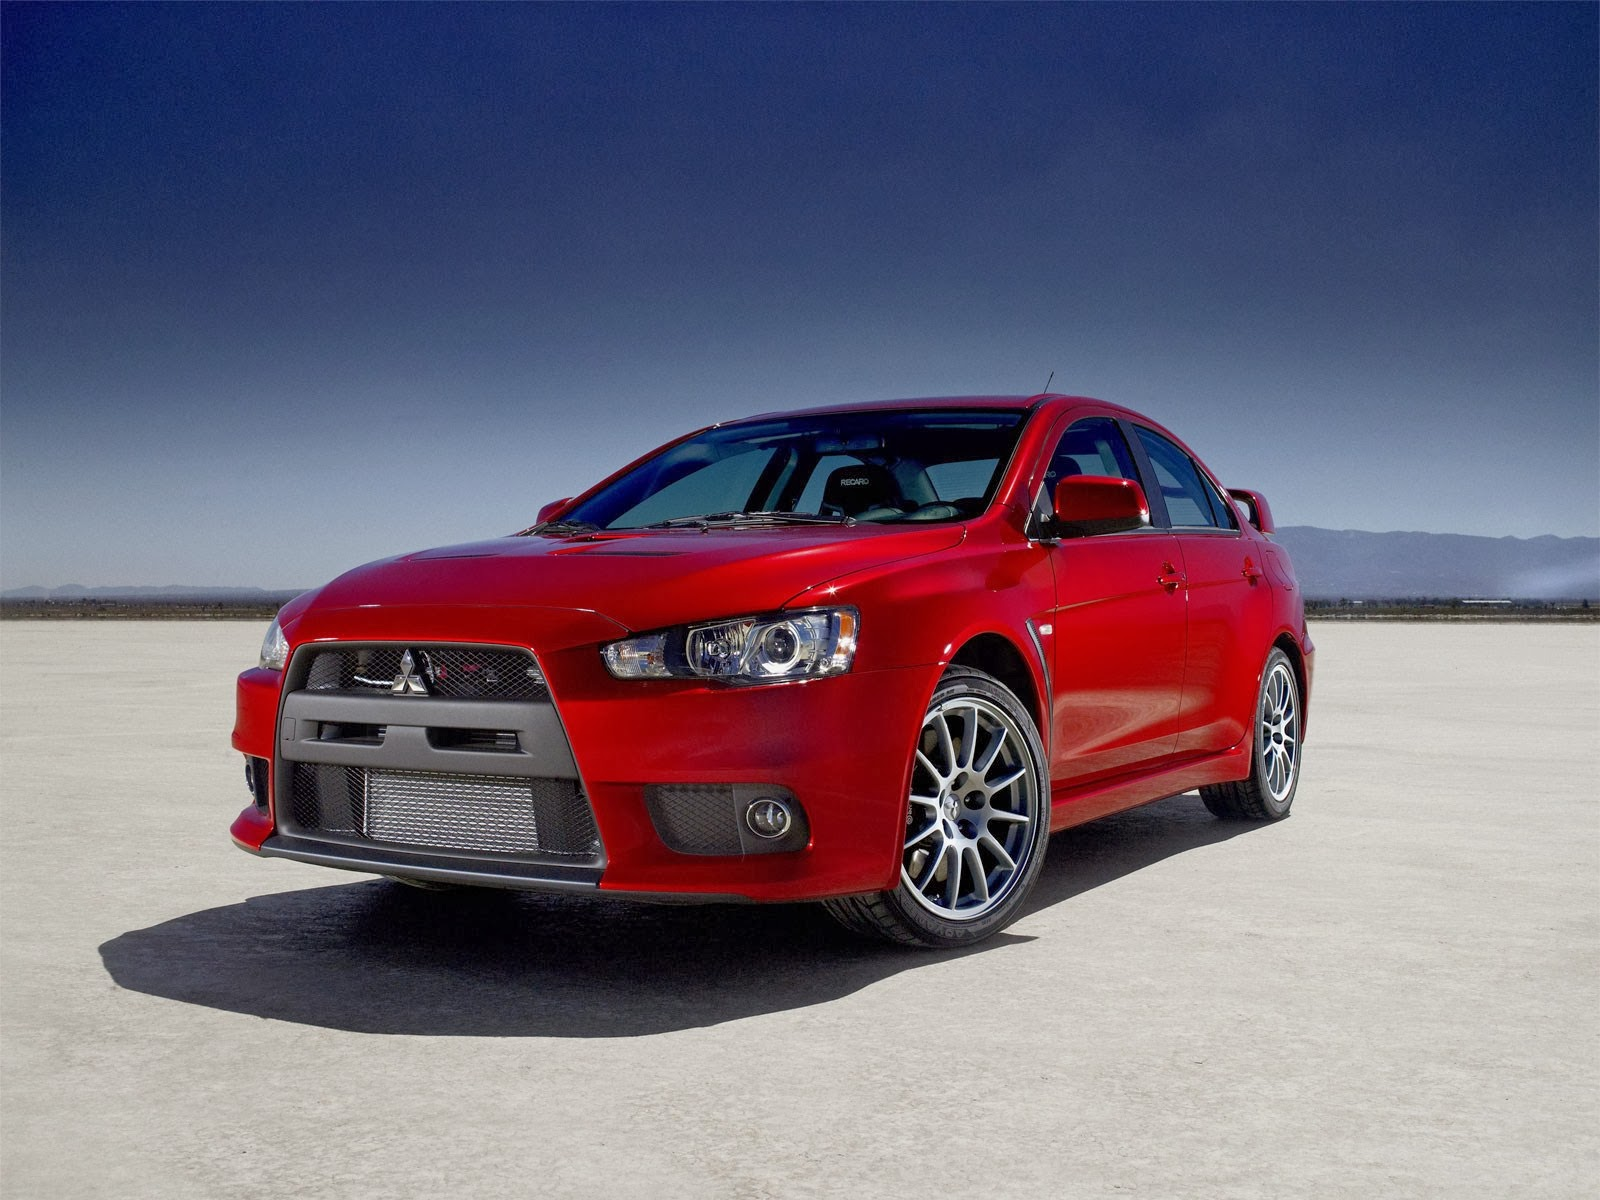 mitsubishi lancer evolution x prices photos just welcome to automotive. Black Bedroom Furniture Sets. Home Design Ideas